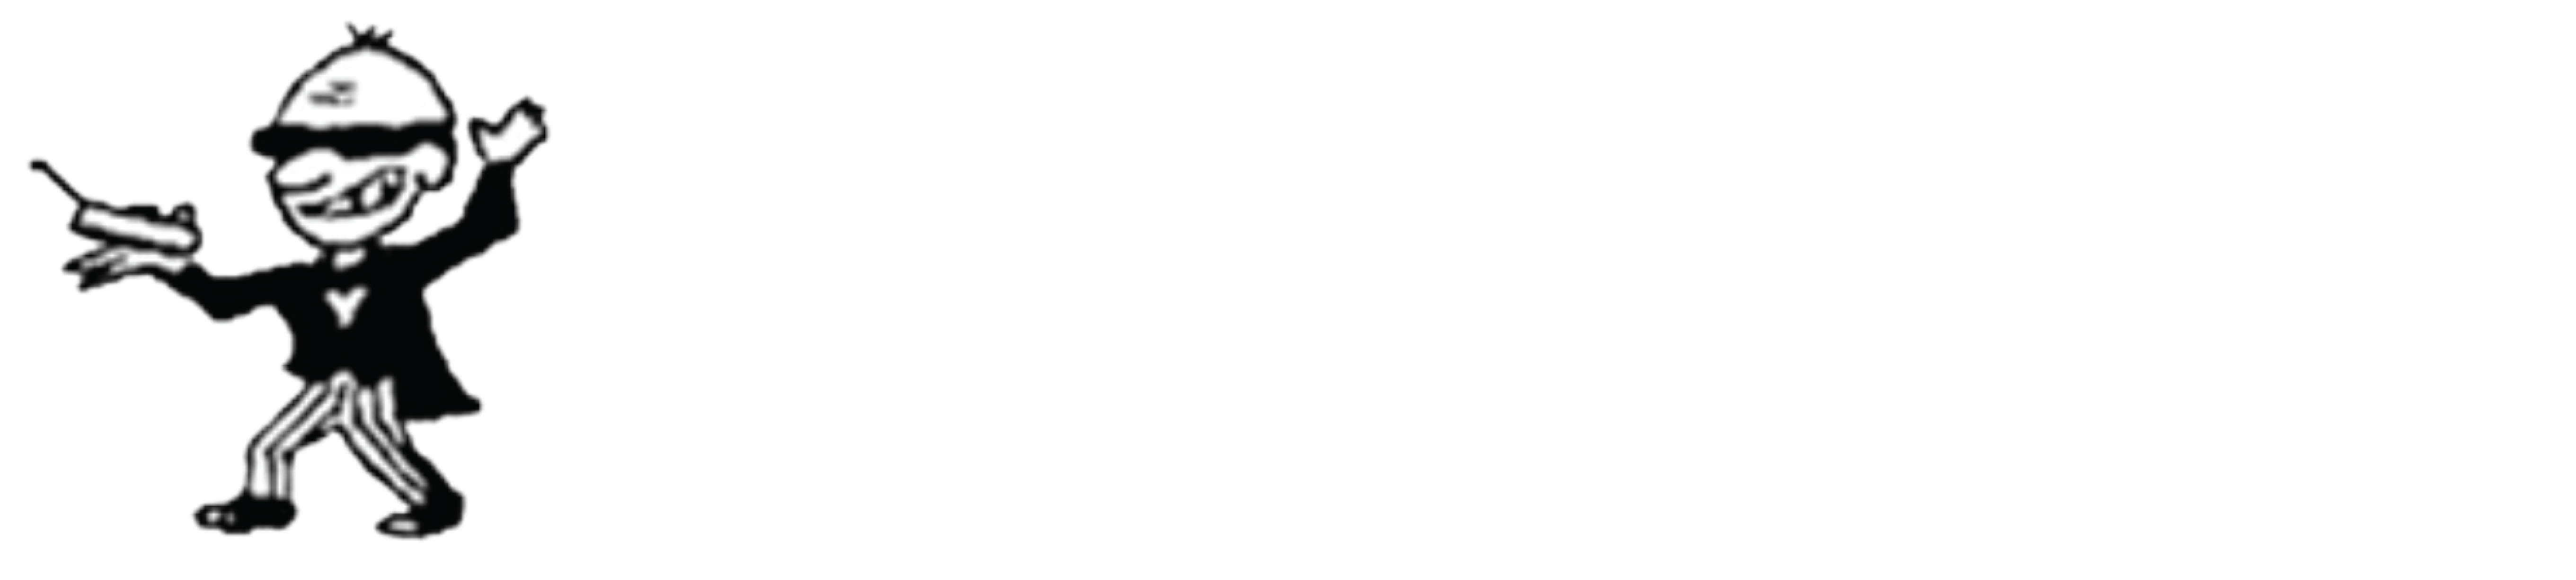 Butler Automation